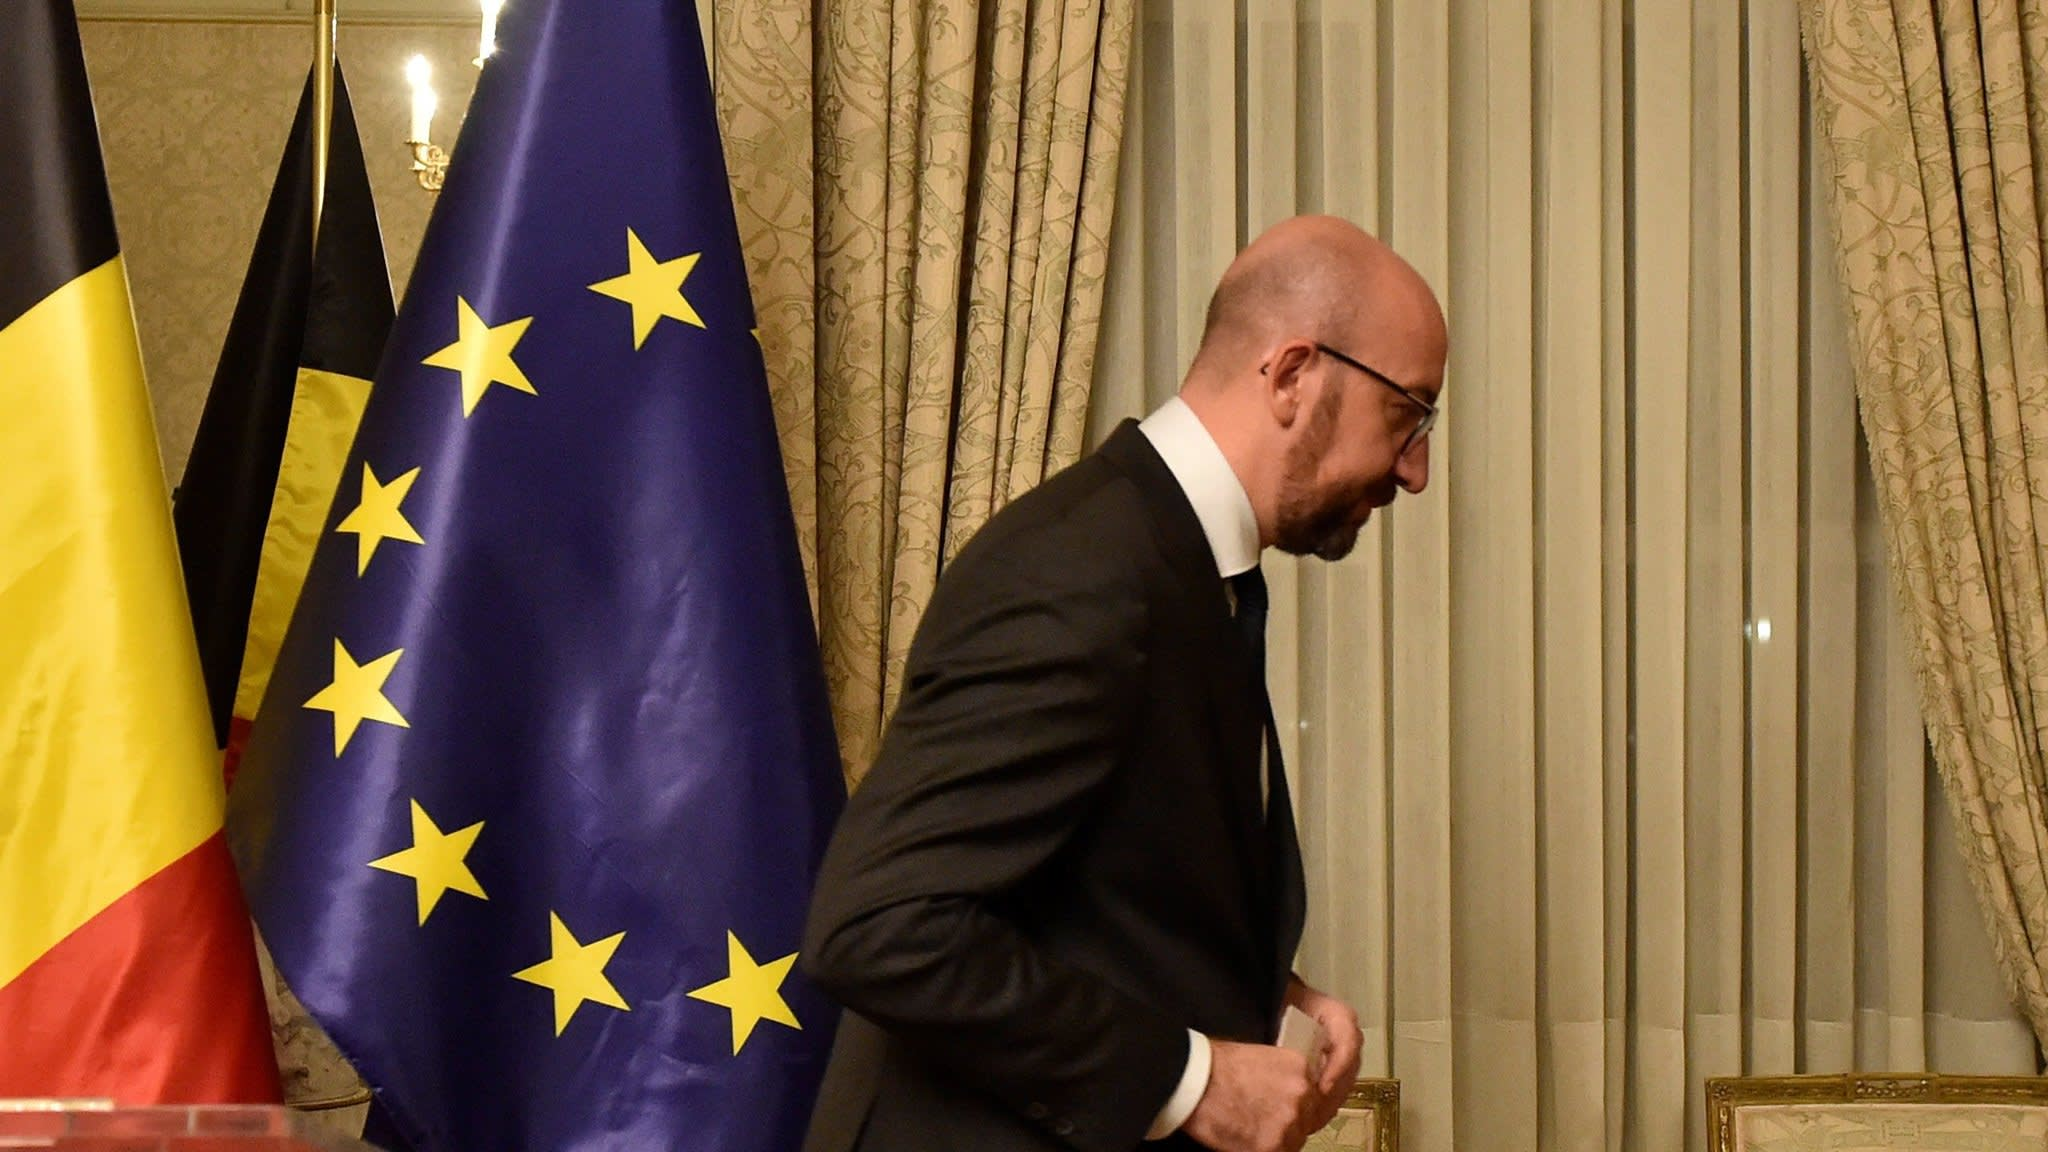 Belgium's government in crisis after N-VA quits coalition